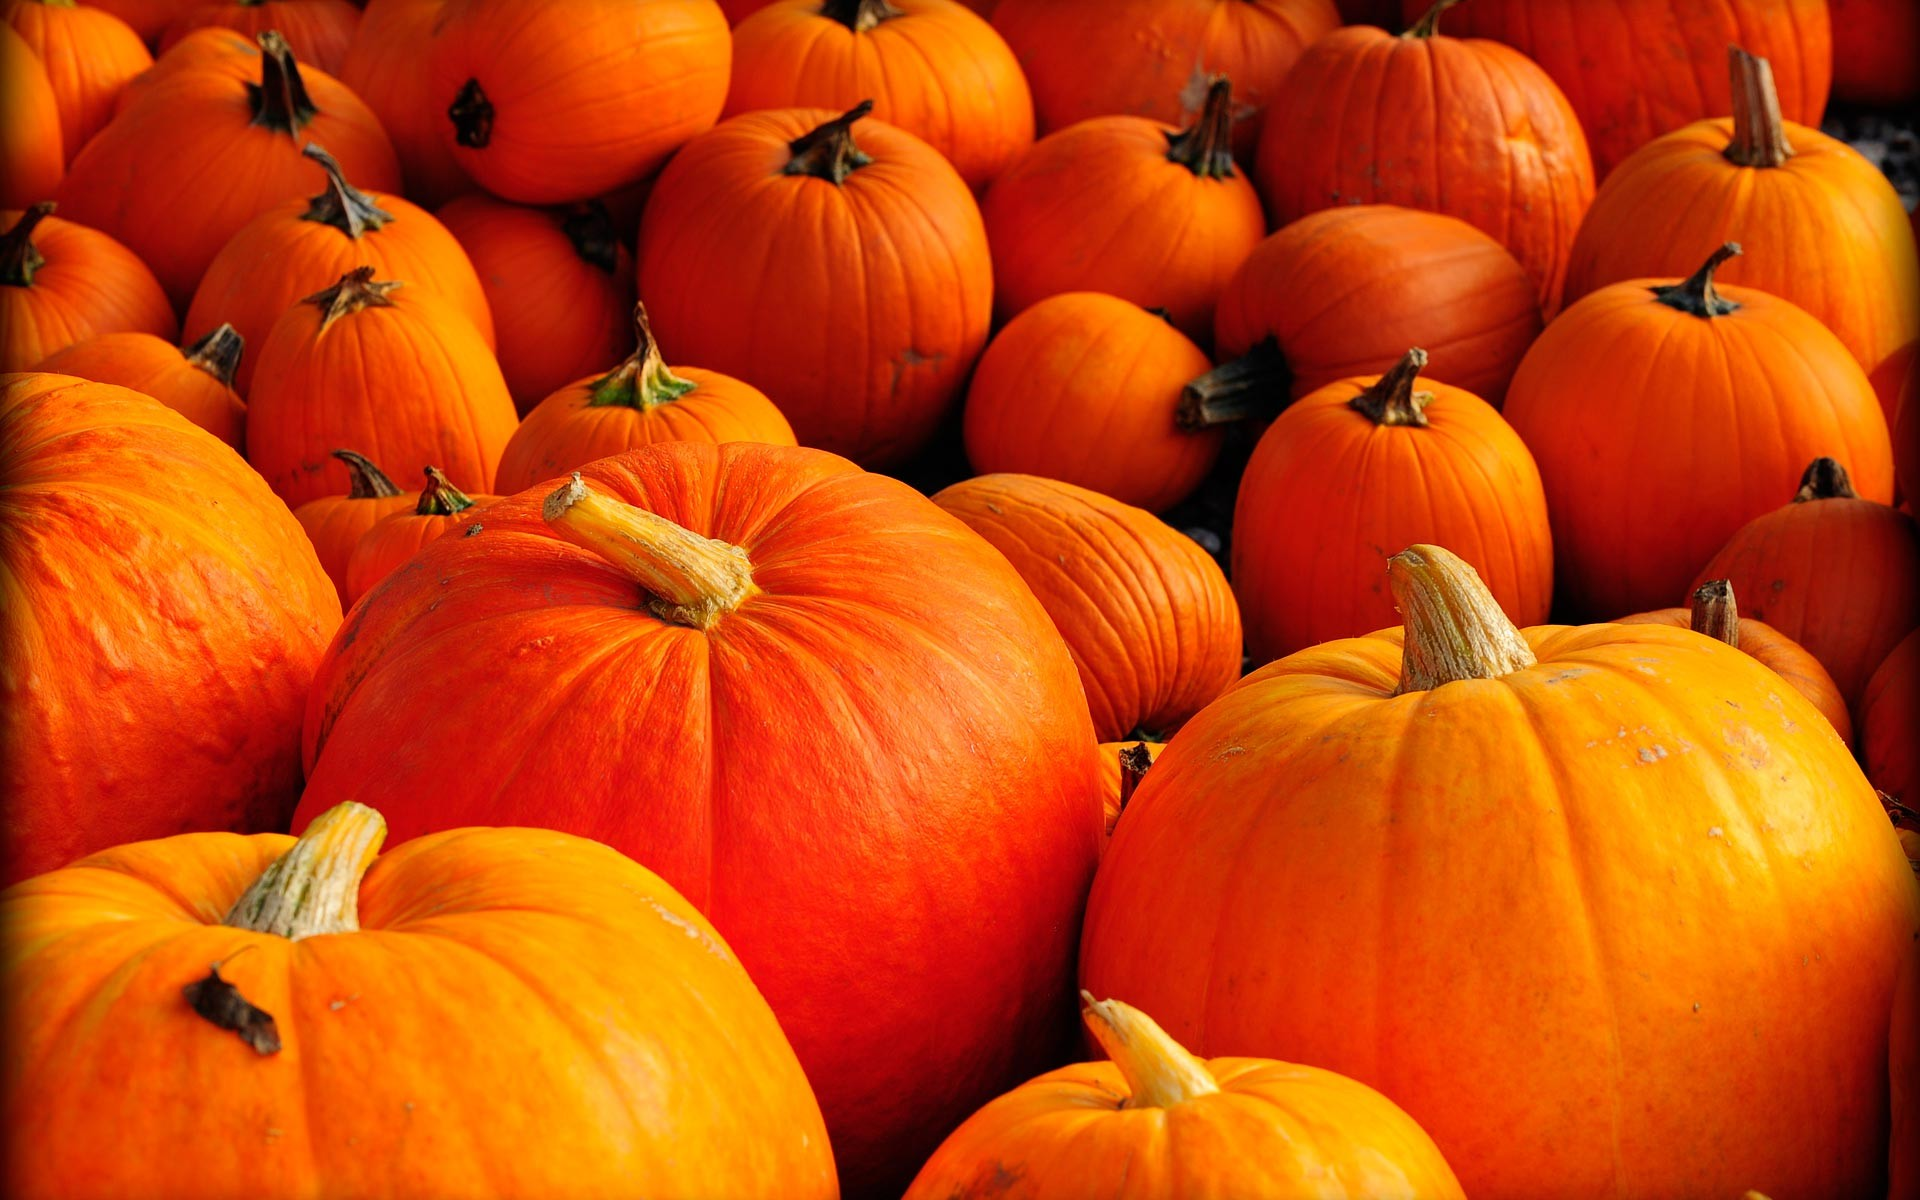 Autumn Pumpkin Wallpaper 47 images 1920x1200